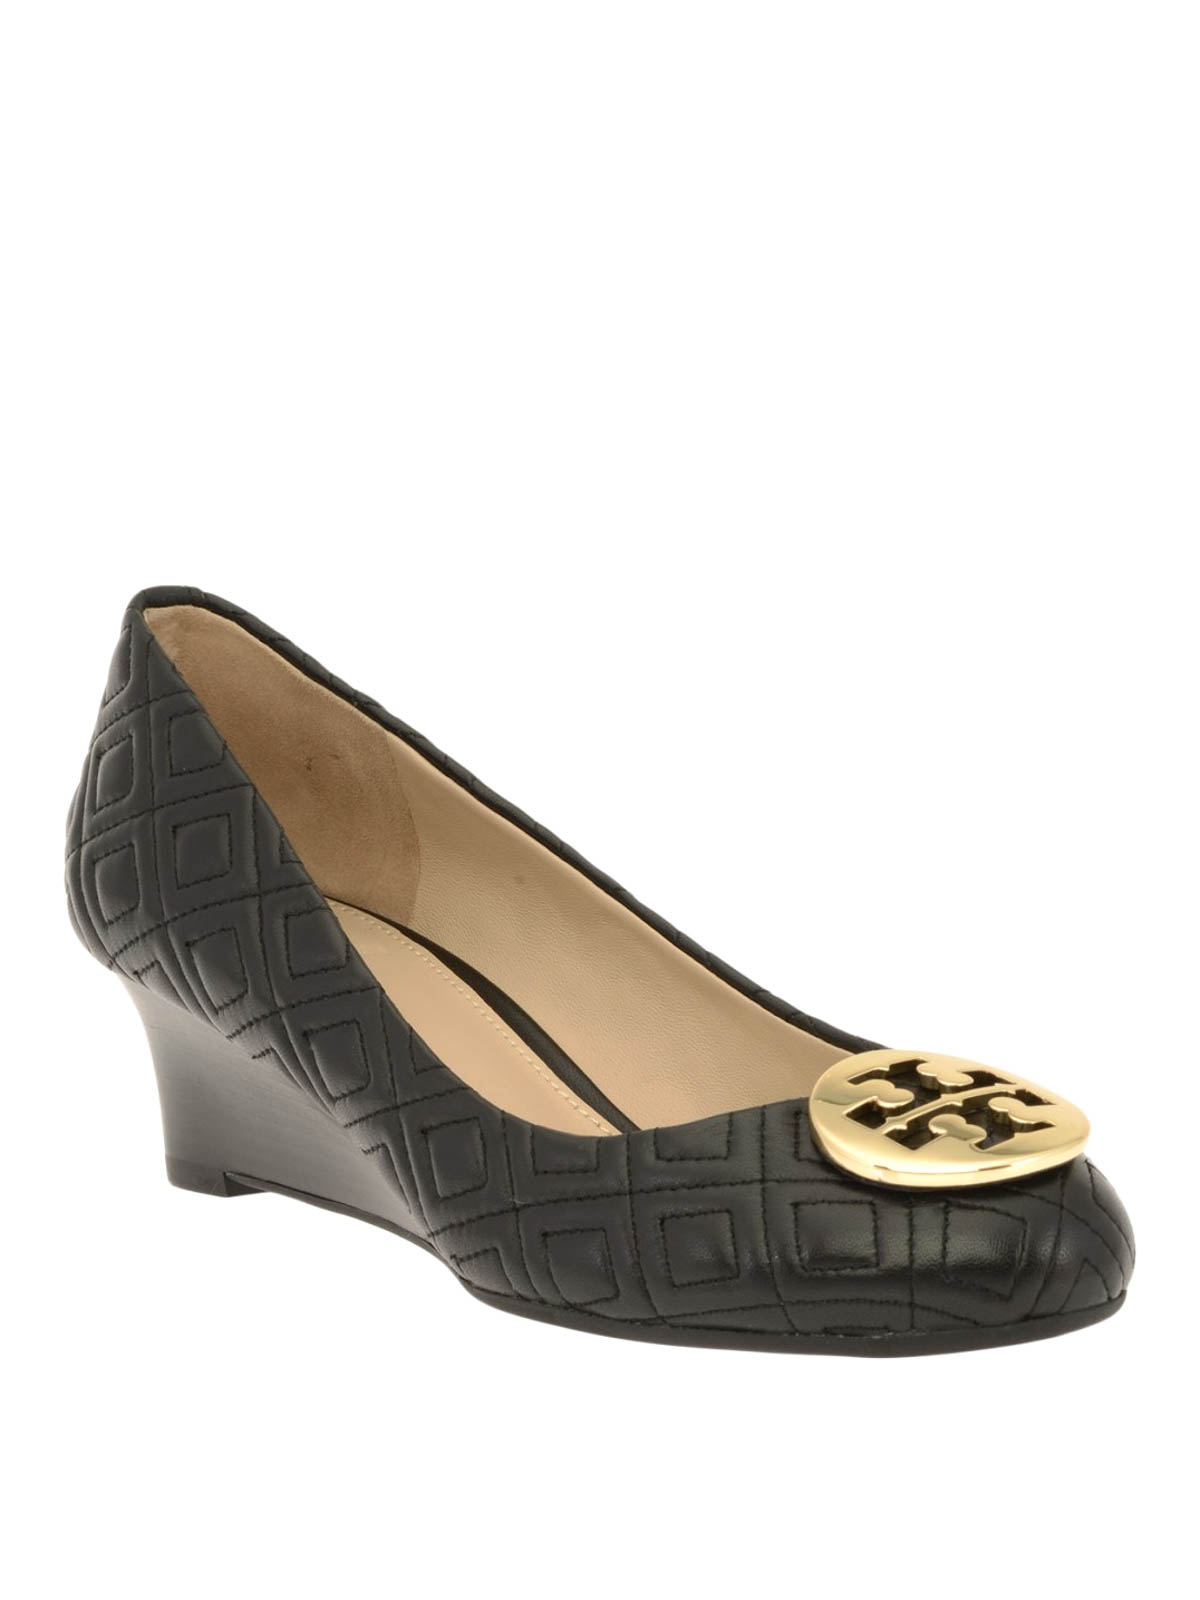 4a9f6787a0ac6 Tory Burch - Luna embossed leather wedge pumps - court shoes - 32895 001